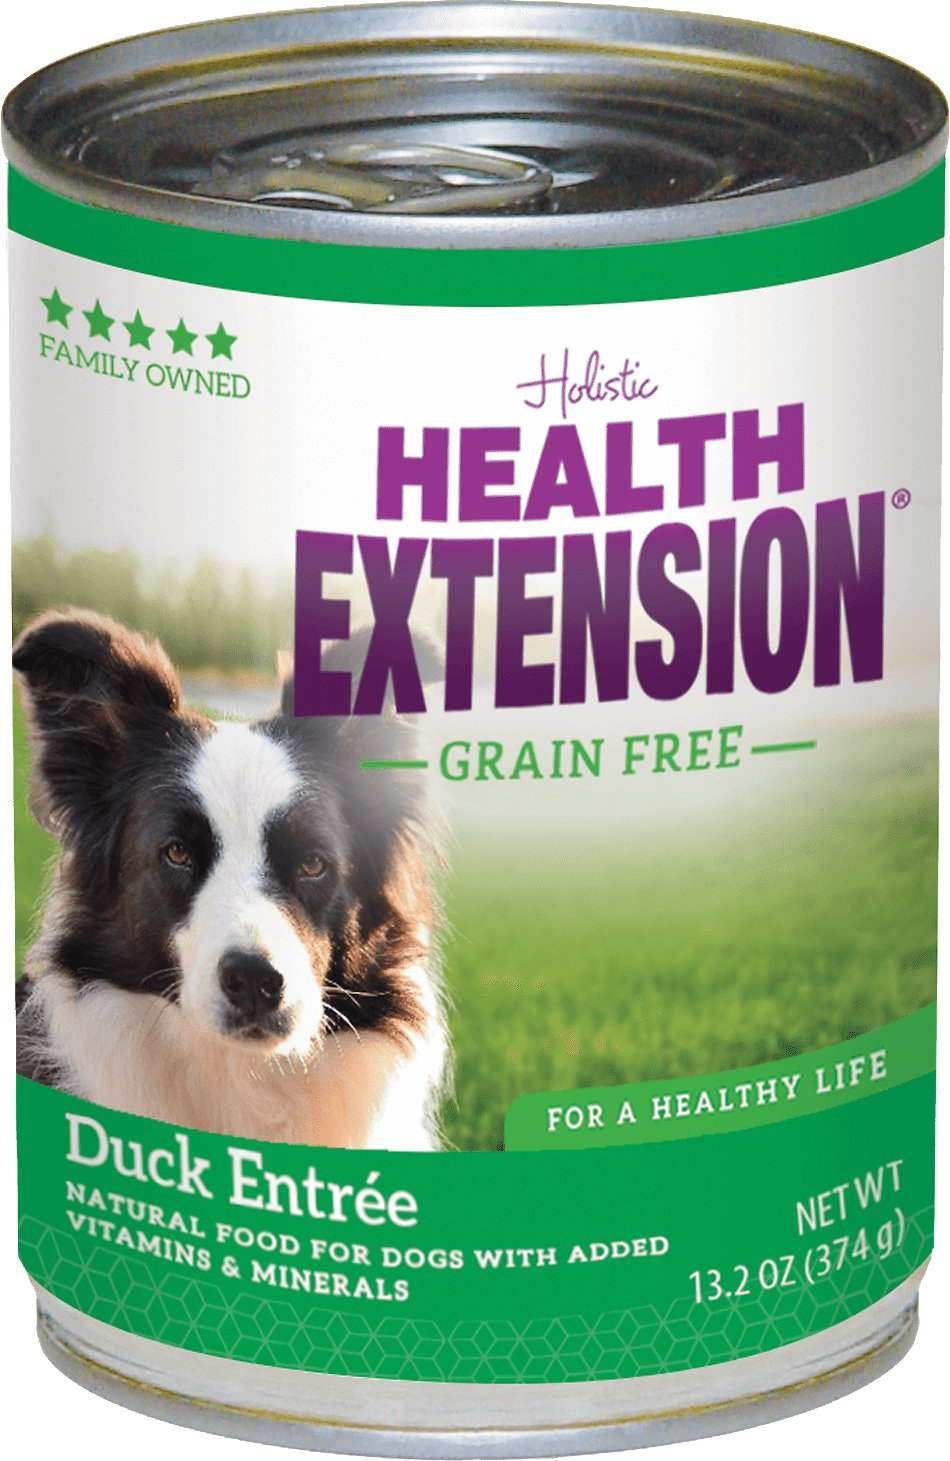 Health Extension Duck Entree Grain-Free Canned Dog Food, 13.2-oz